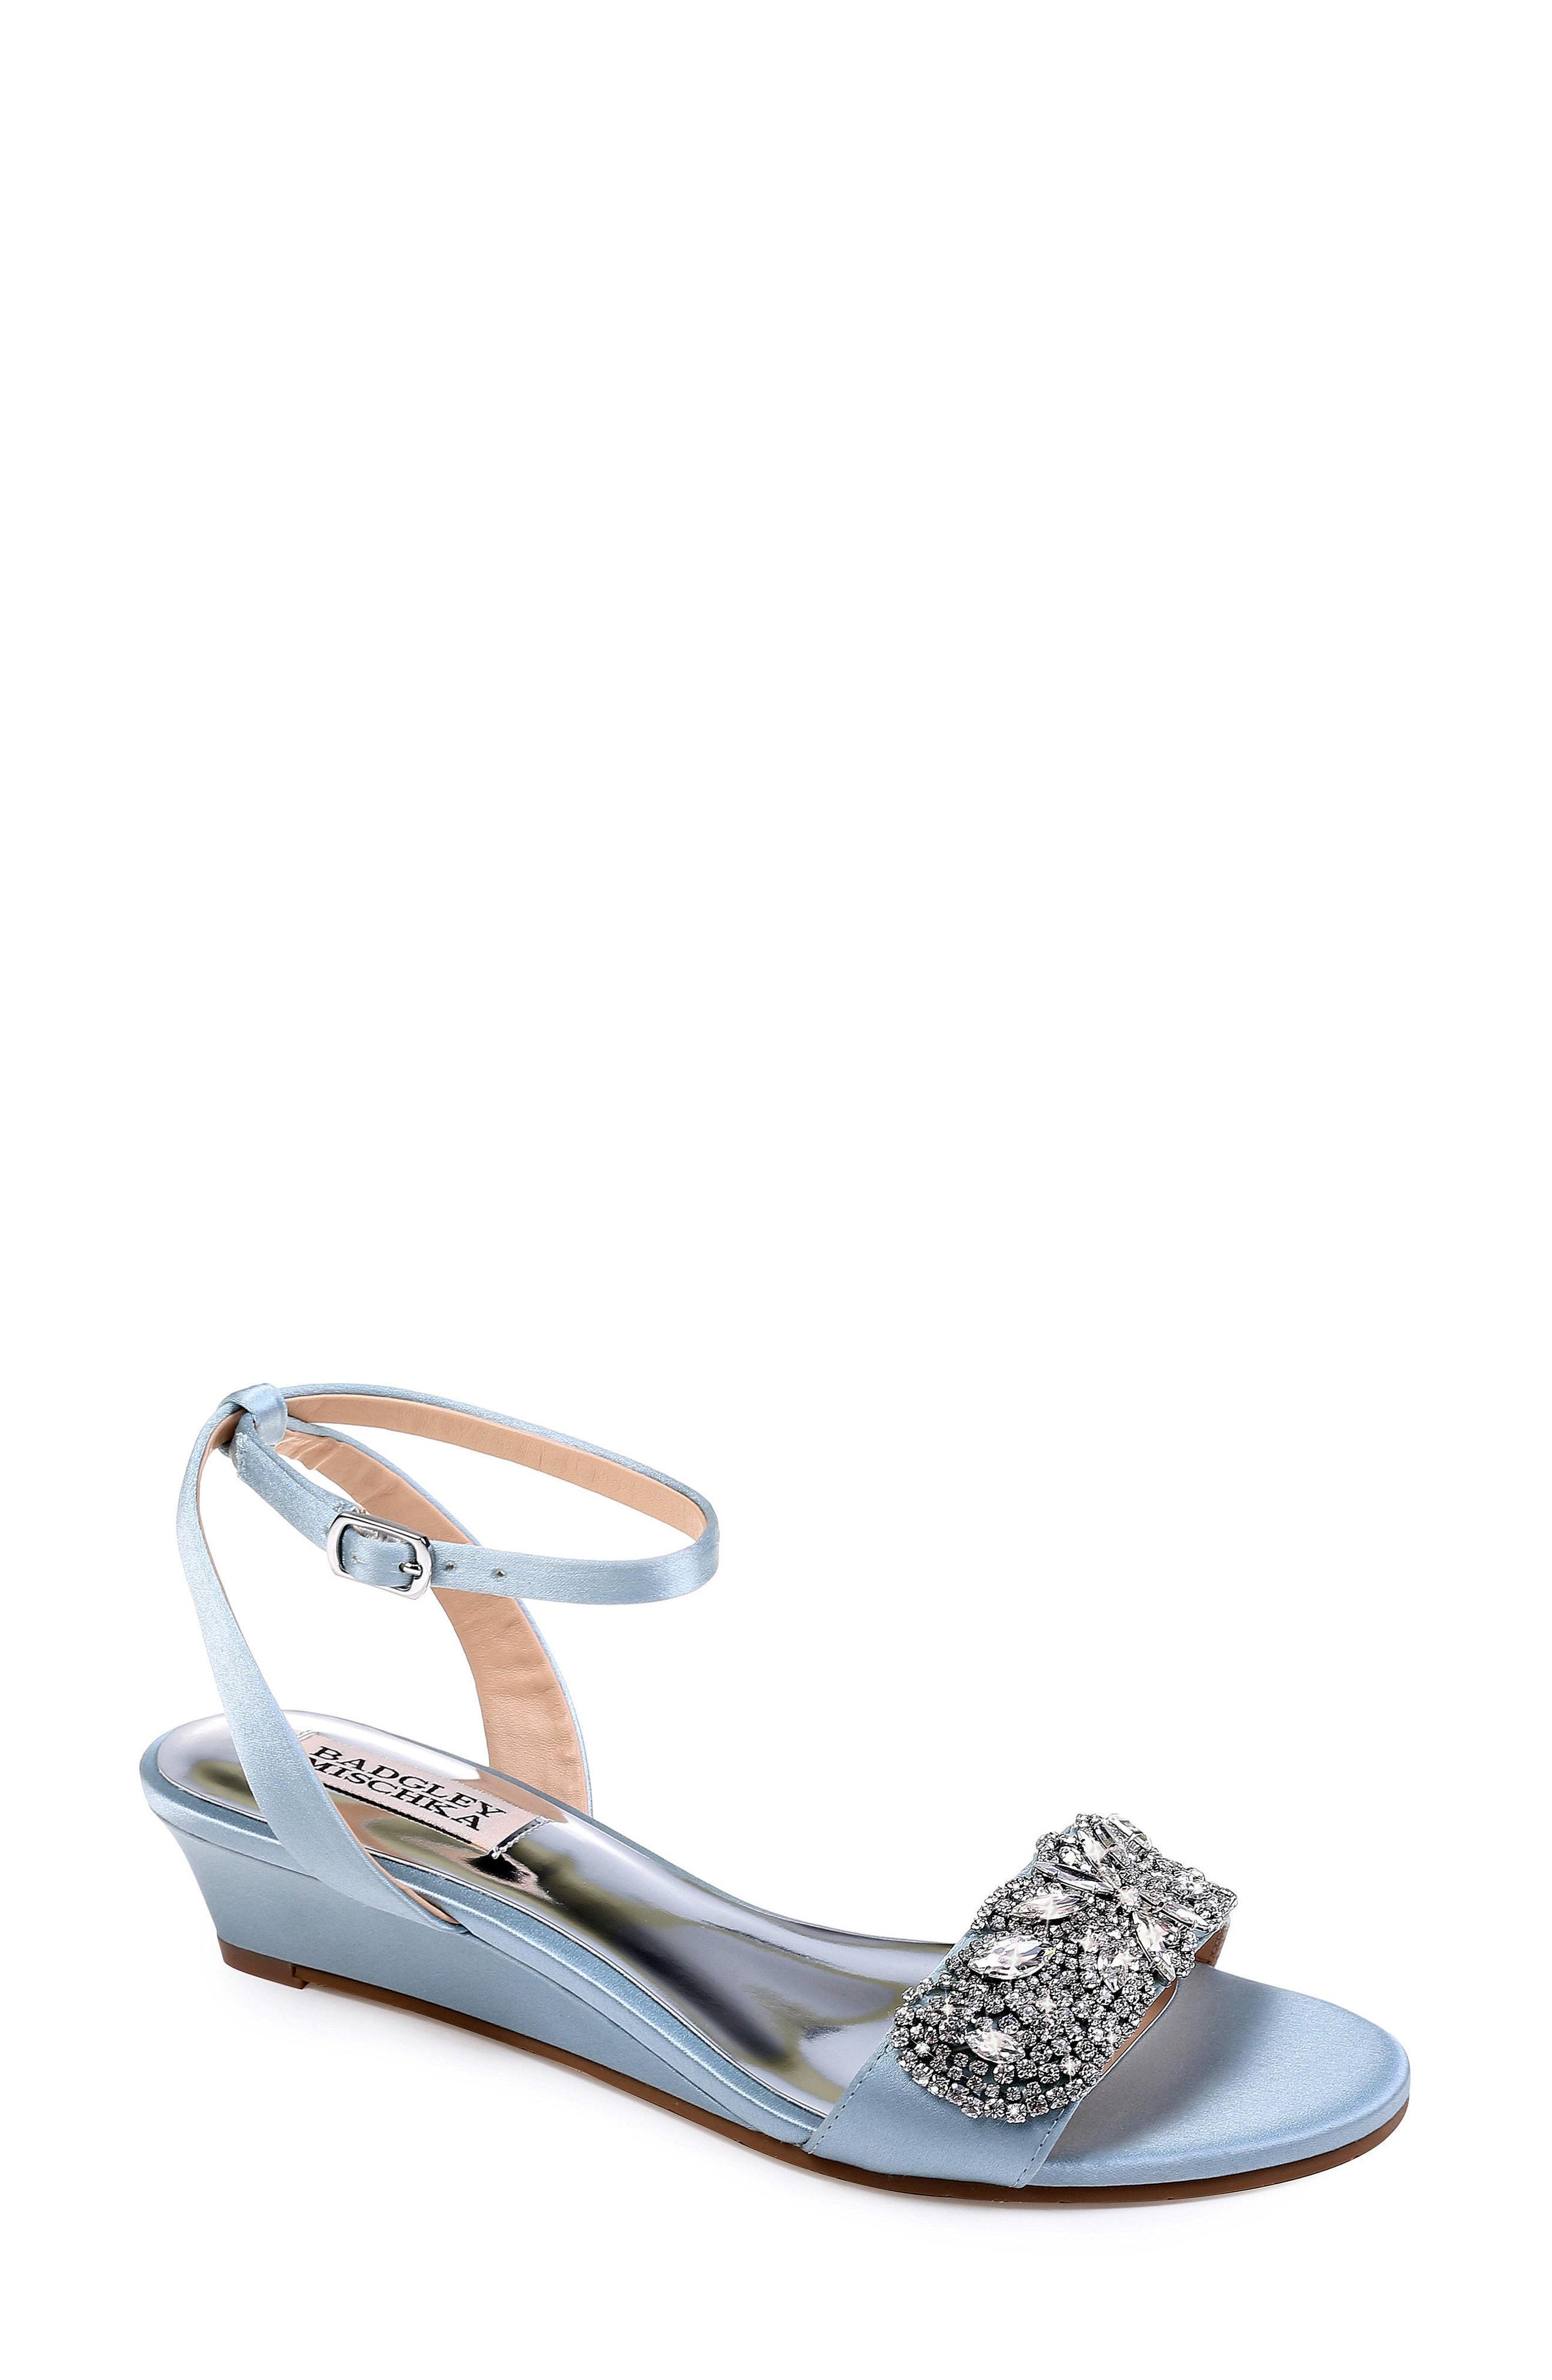 477c8e5239c0 Badgley Mischka Women s Hatch Embellished Satin Demi Wedge Sandals In  Crystal Blue Satin